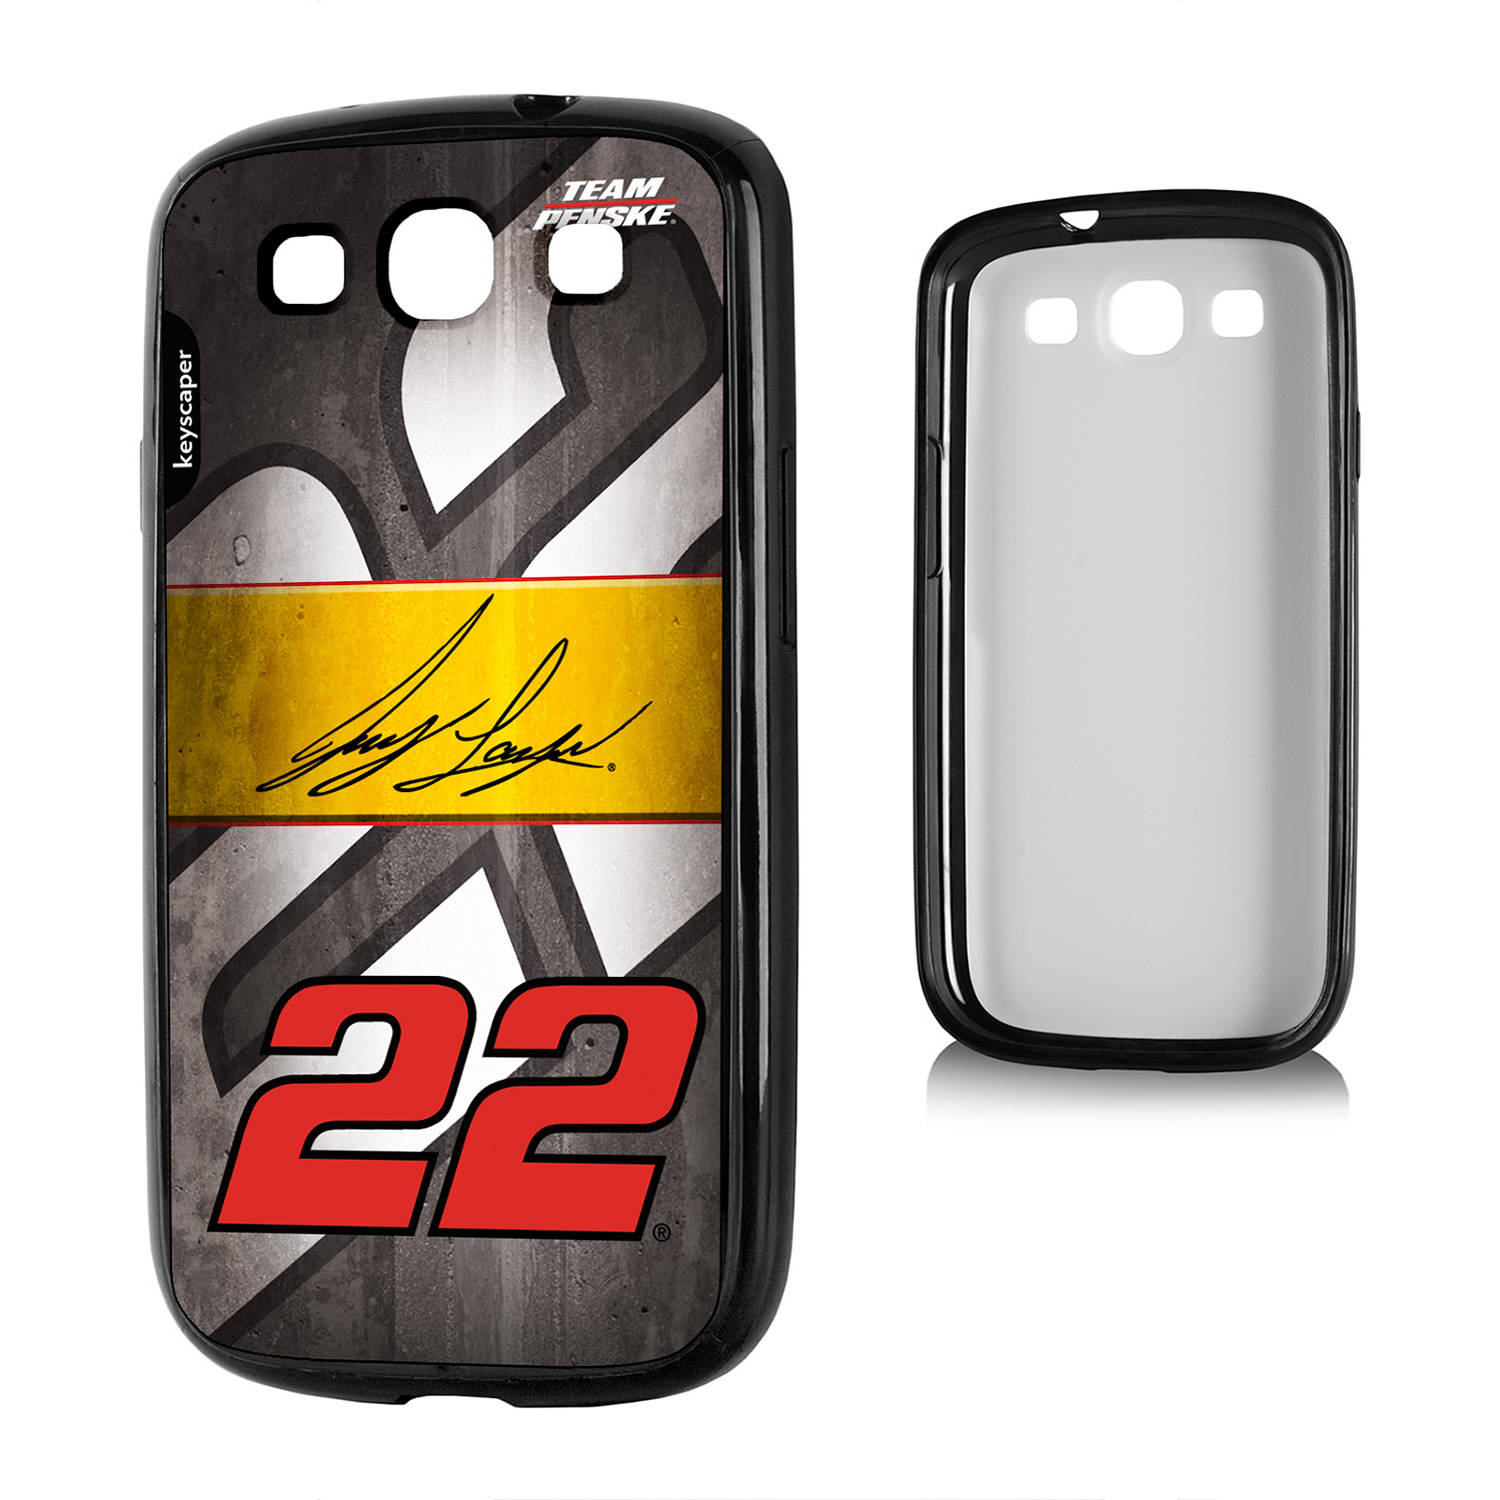 Joey Logano #22 Galaxy S3 Bumper Case